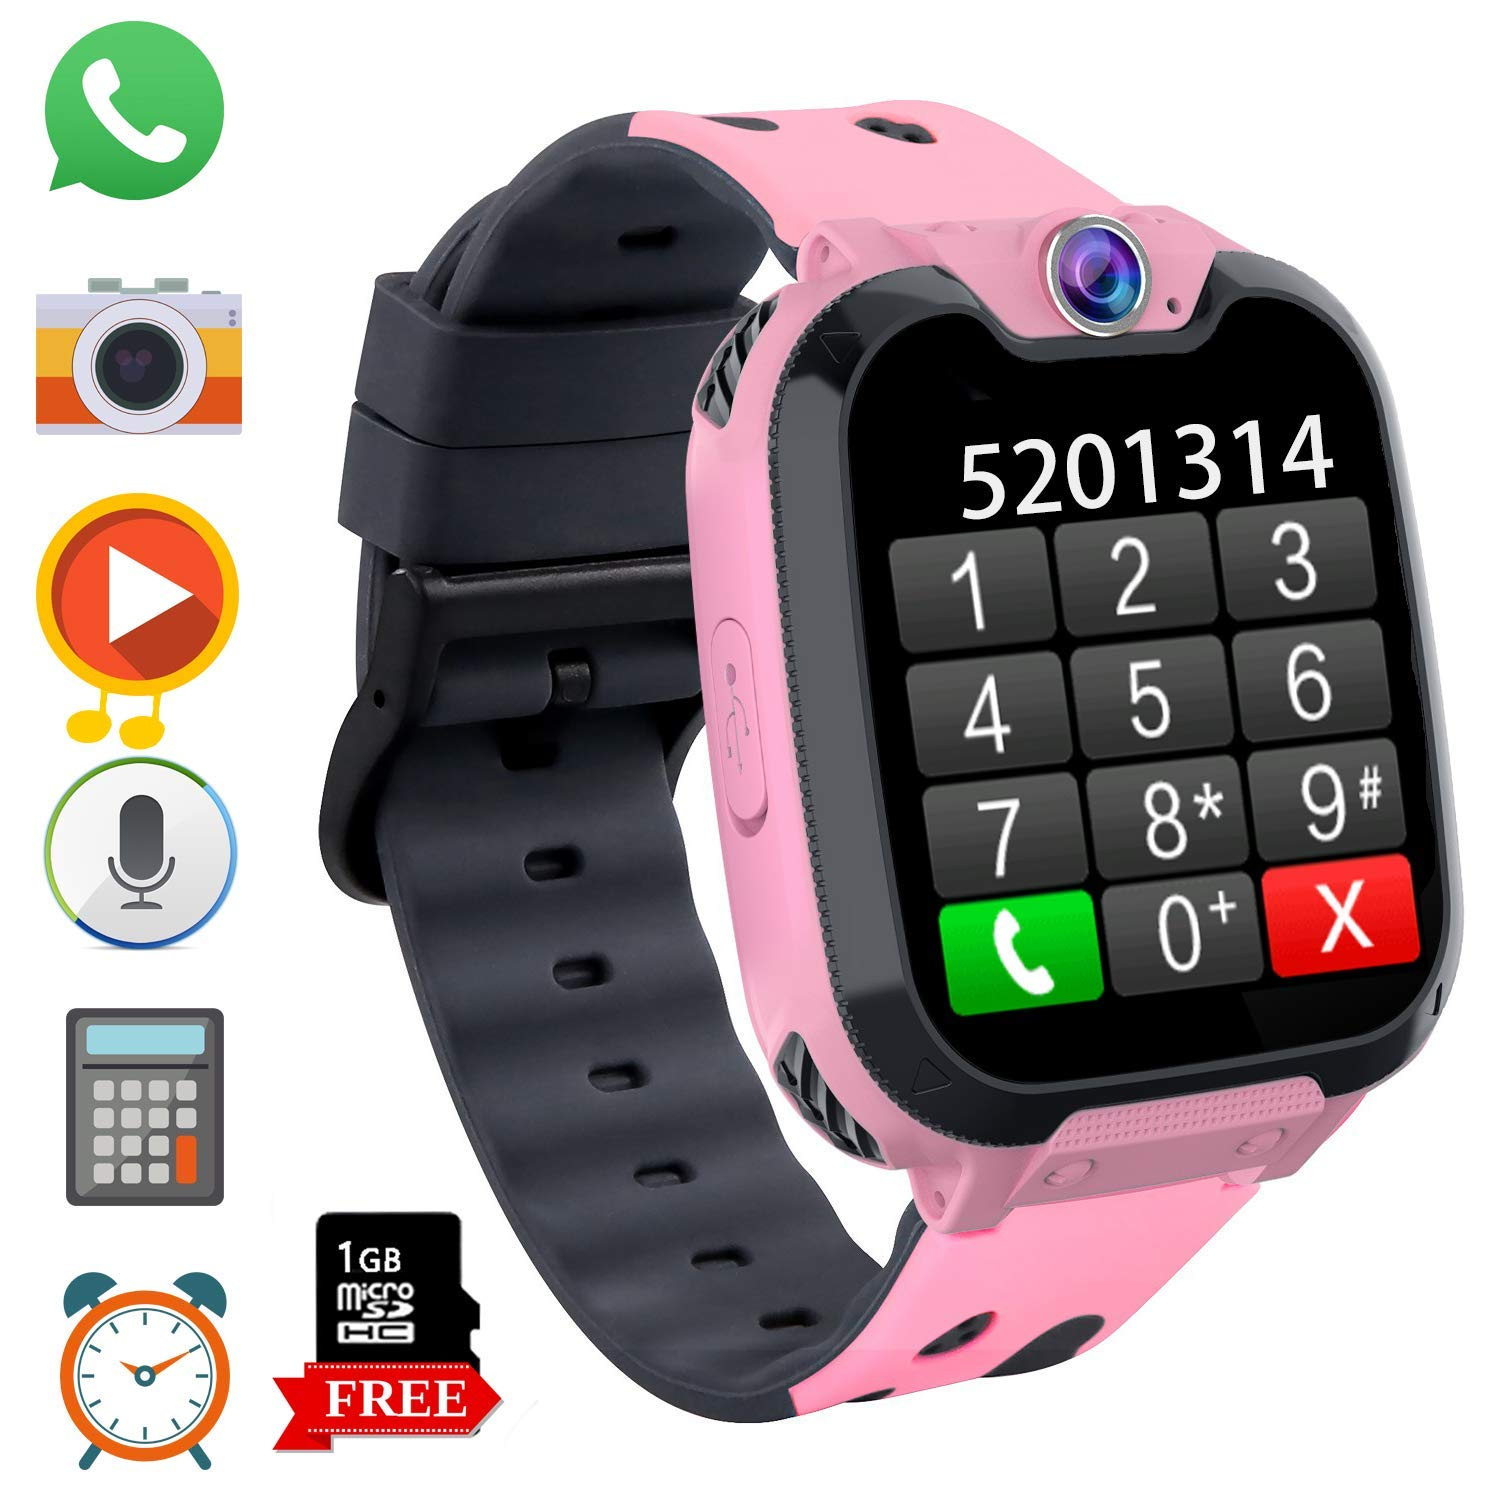 Game Kids Smart Watch Phone for Students, Boys Girls 1.54 inchesTouch Screen Smartwatch with MP3 Player Games Camera Alarm Clock Stopwatch for ...